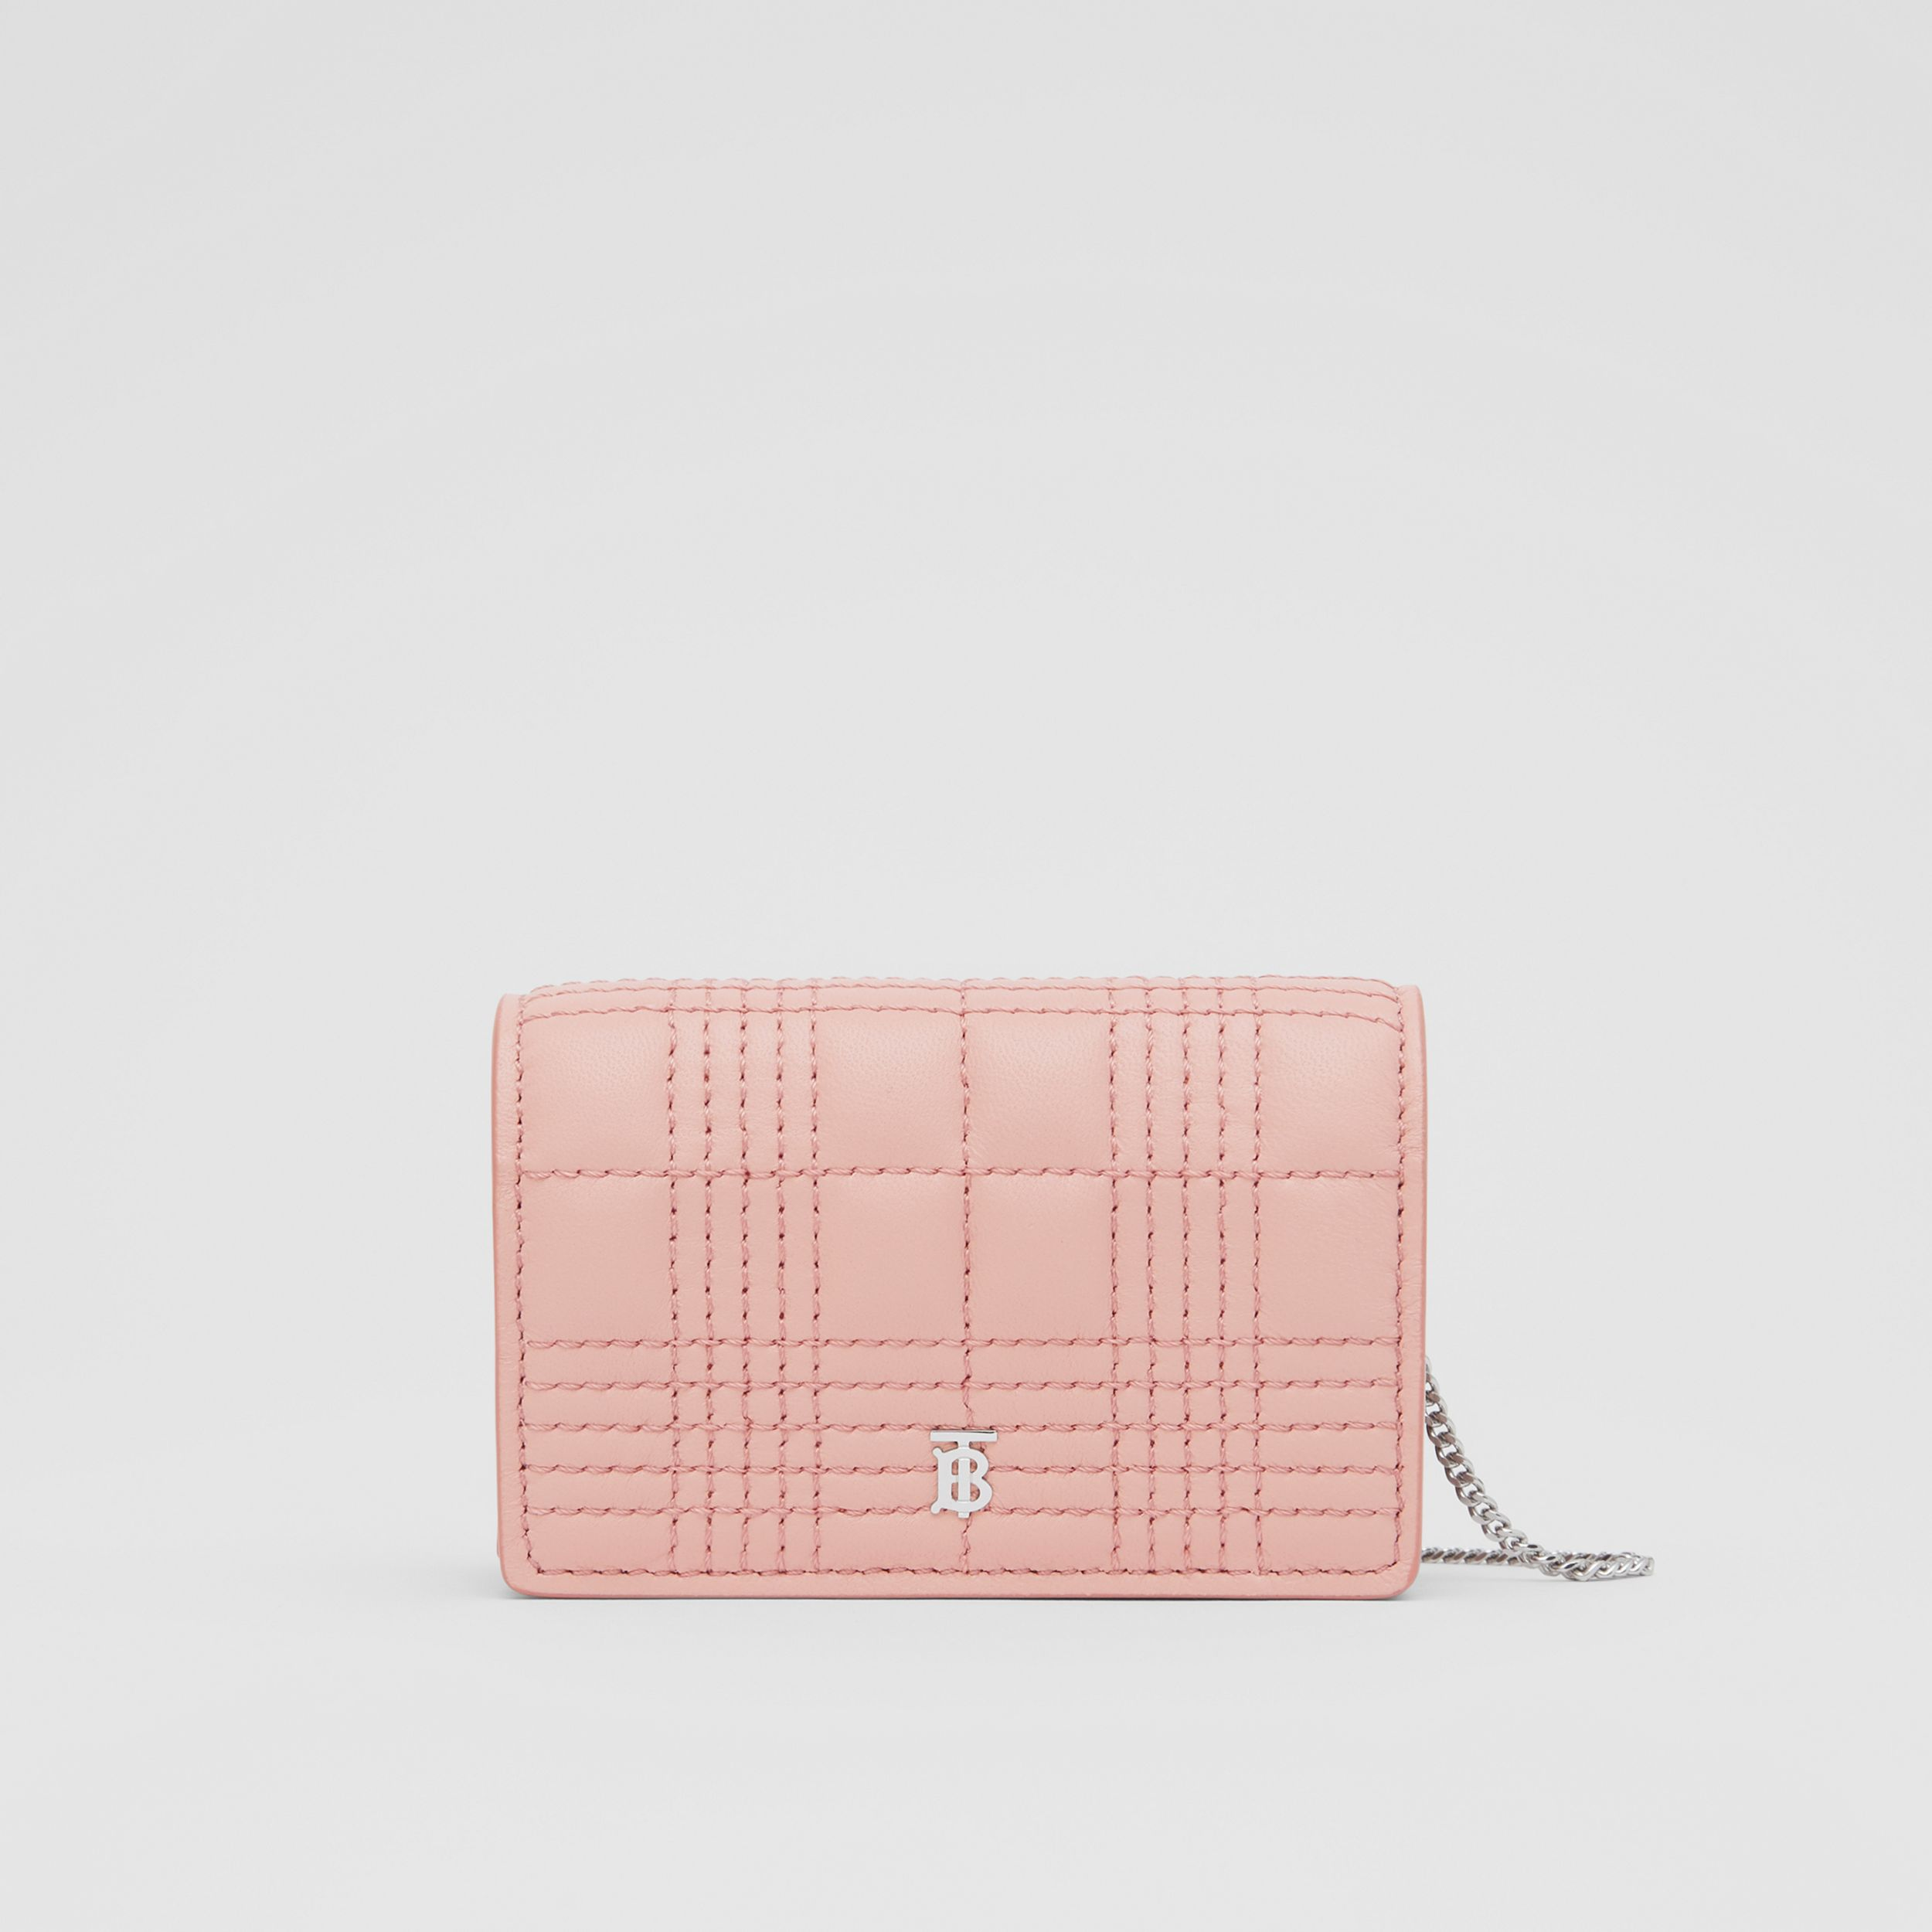 Quilted Lambskin Card Case with Detachable Strap in Blush Pink - Women | Burberry - 1